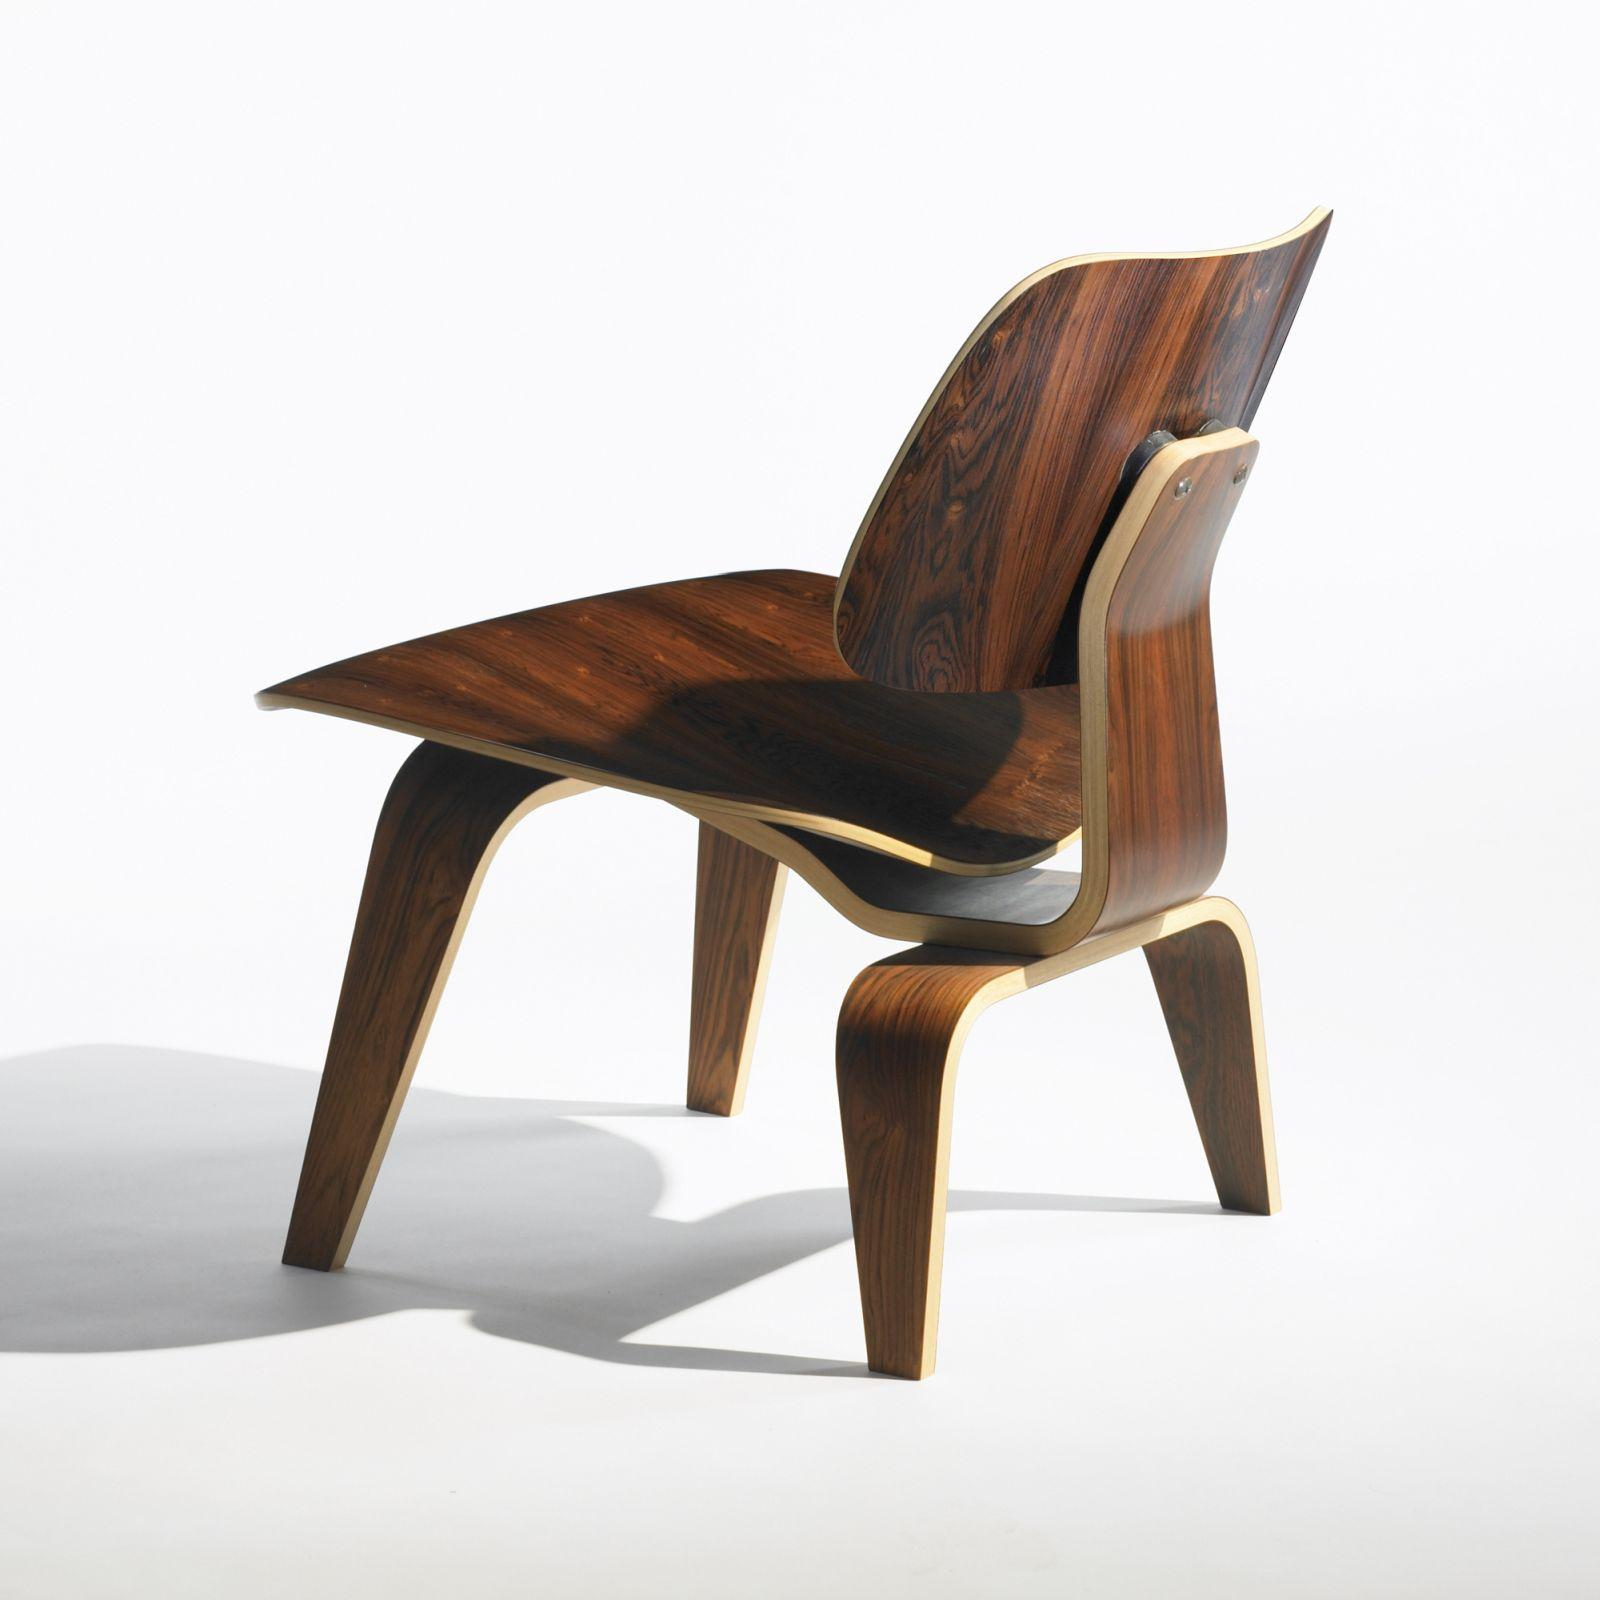 sc 1 st  iCollector.com & Charles and Ray Eames LCW